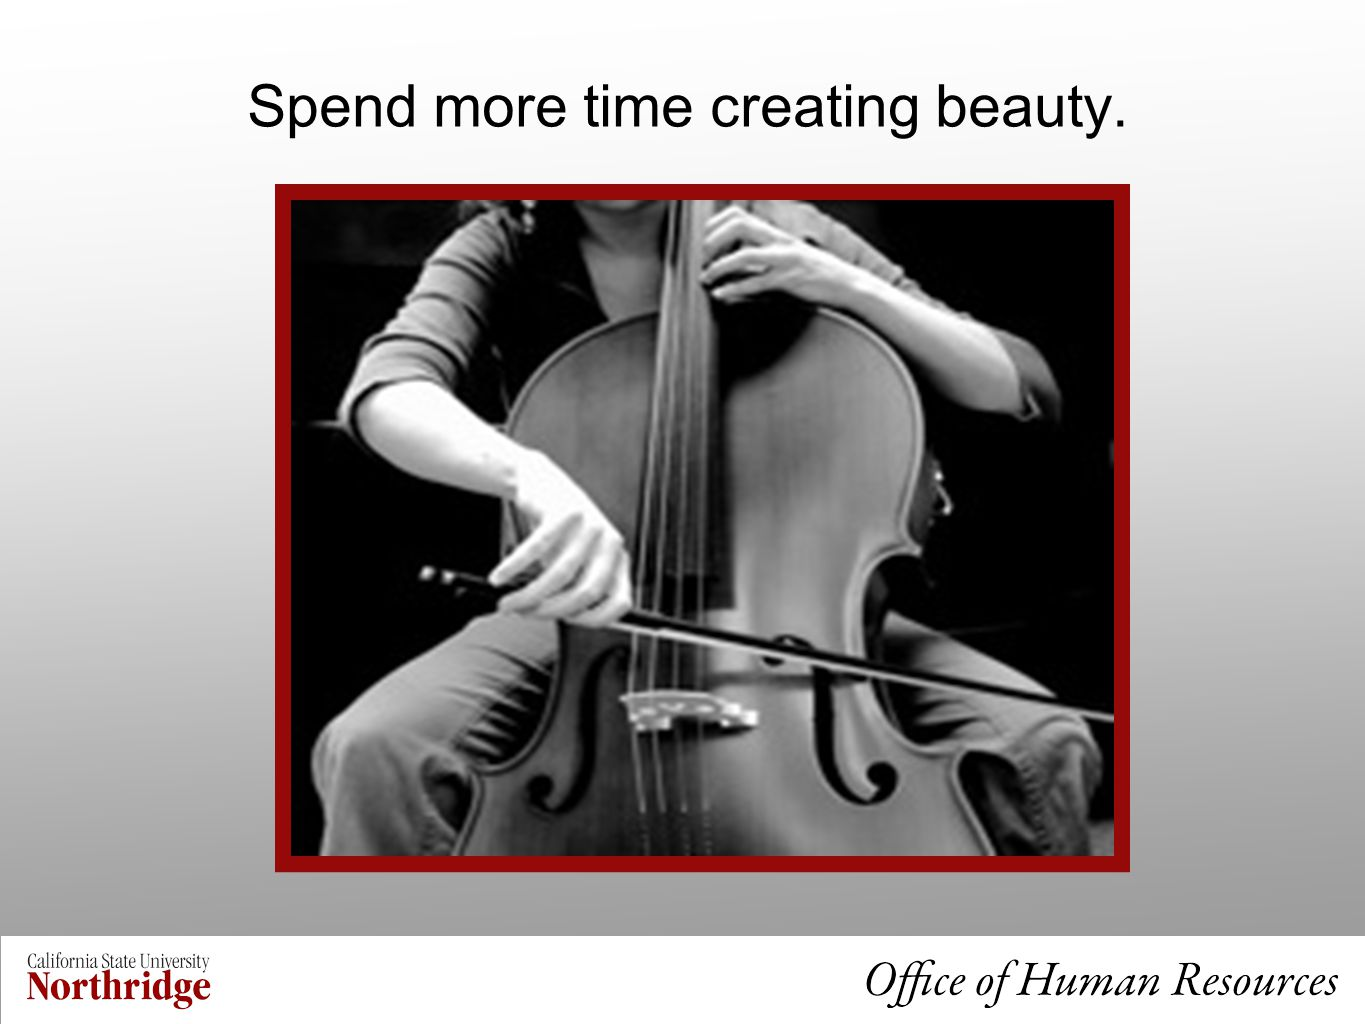 Spend more time creating beauty.